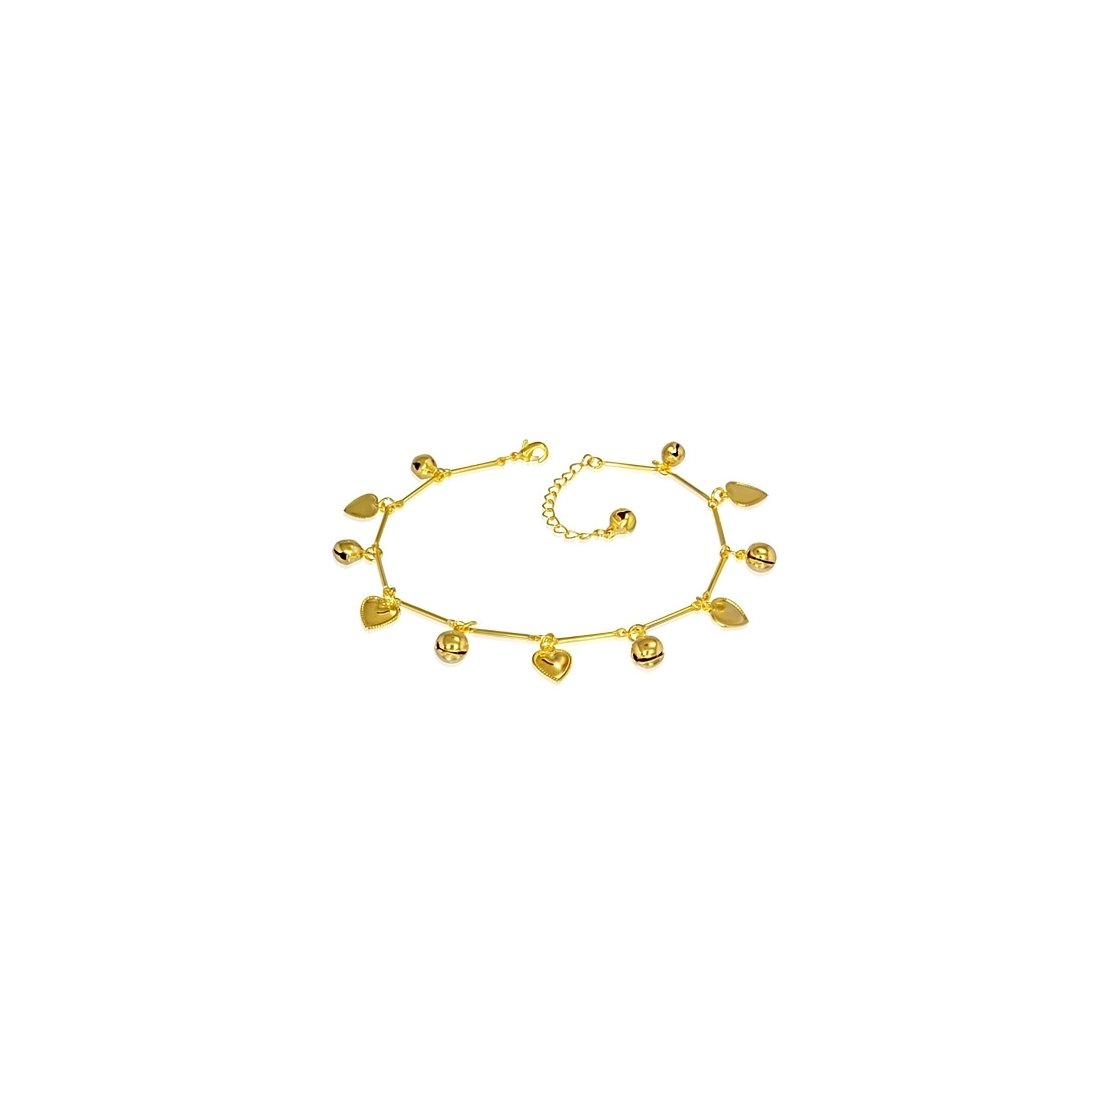 Fashion Gold Color Plated Copper Love Heart Jingle Bell Charm Bracelet/ Anklet with Extender Chain